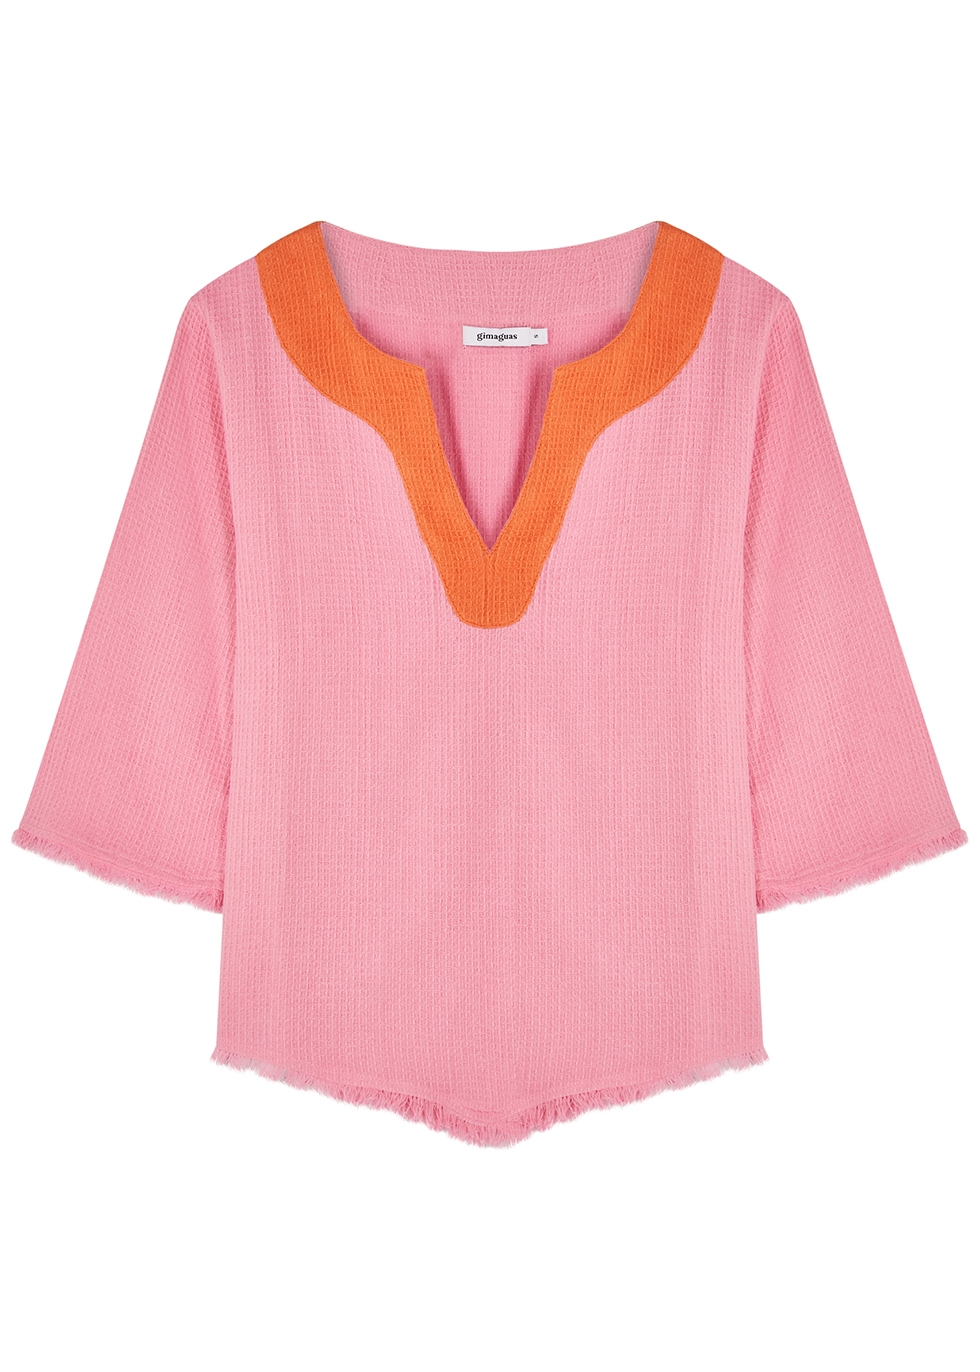 Comporta pink woven cotton top